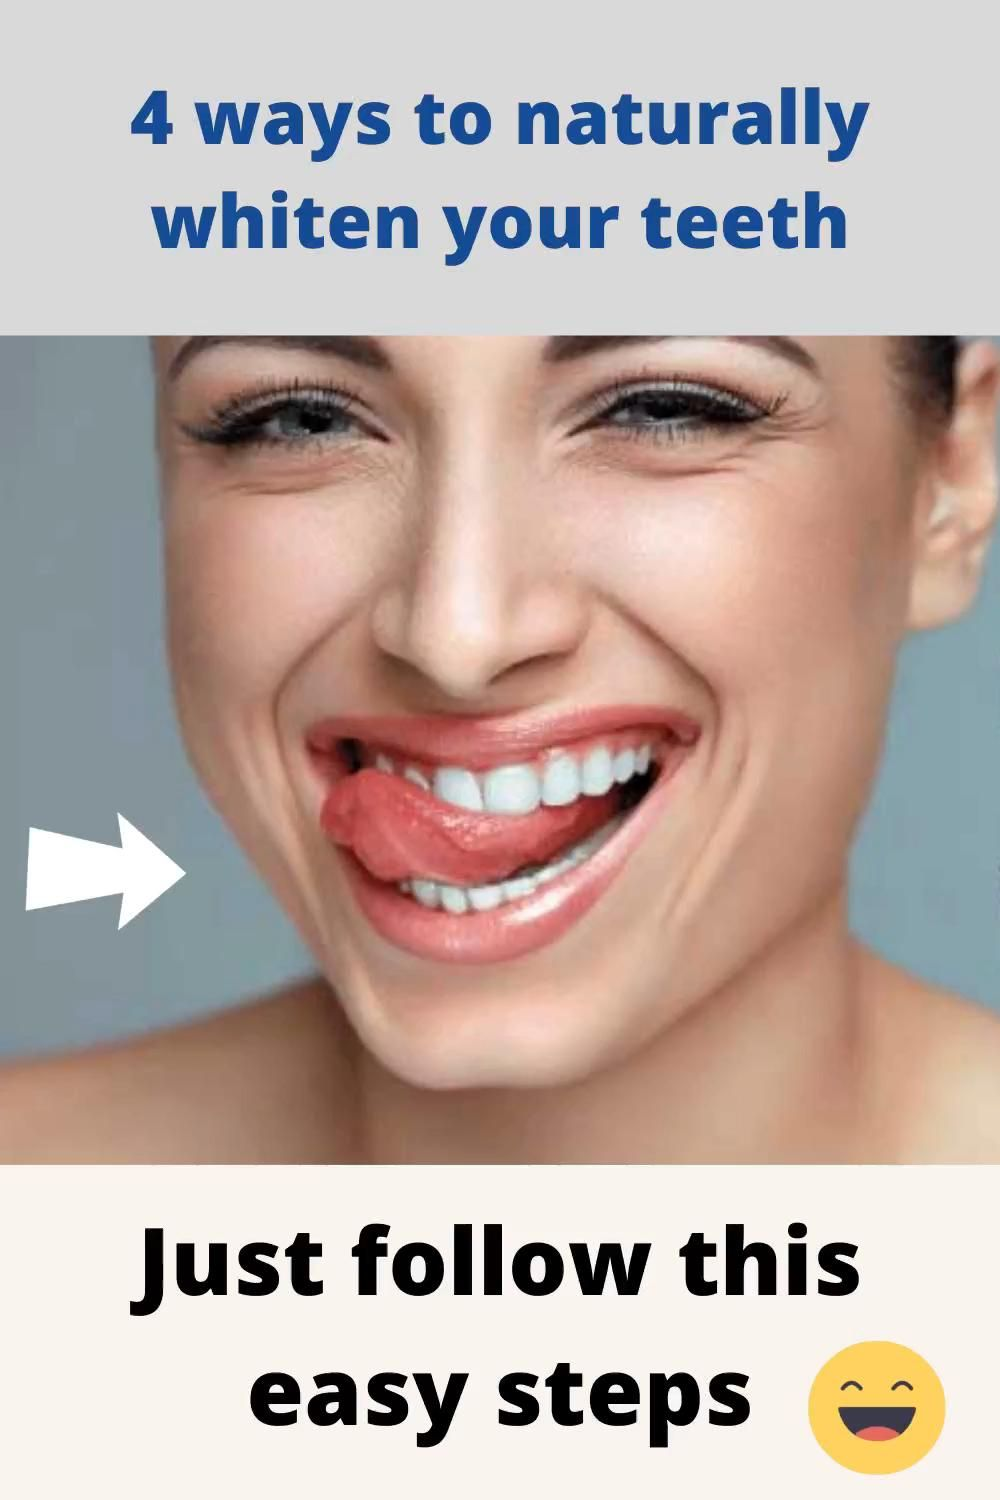 whitening your teeth at home. The smile is the best accessory and what we want is to keep our teeth white and perfect. Although there are many treatments, today we tell you natural ways to achieve it. #whiteningyourteethathome #teethwhitening #howtonaturallywhitenteeth #teethwhiteningremedies #teethwhiteningathome #teethwhiteninghomemade